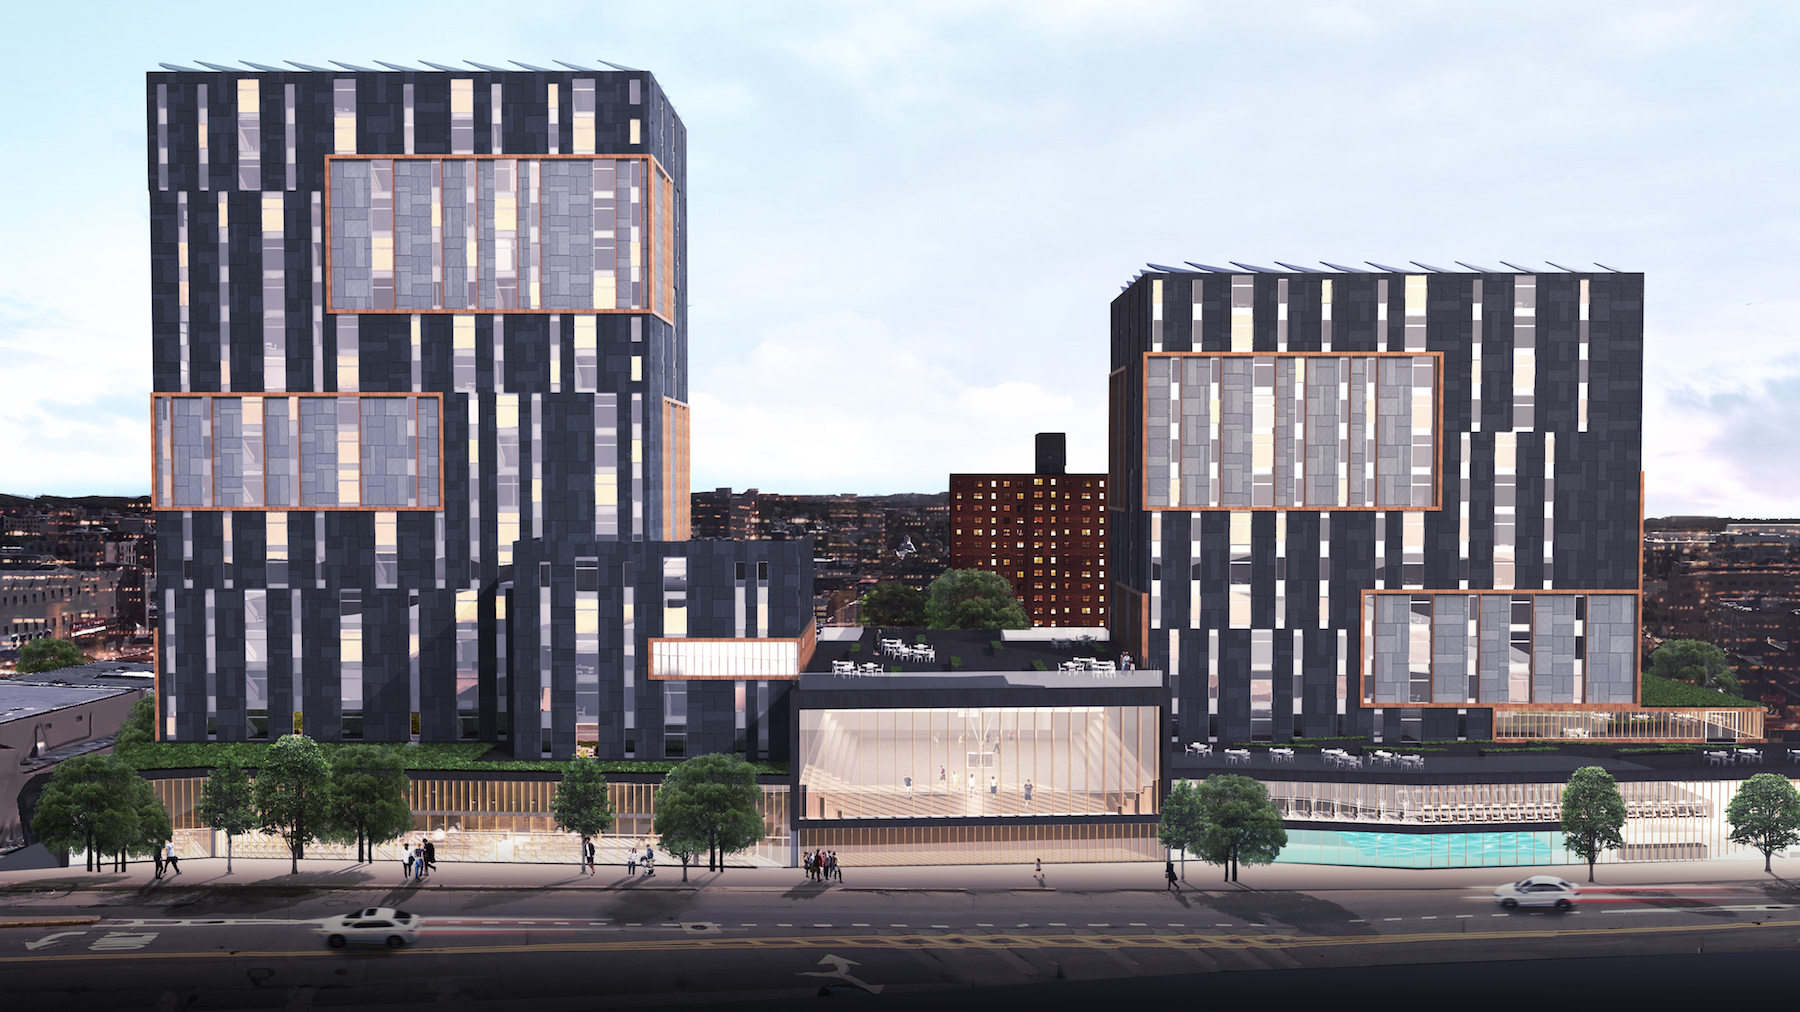 Two apartment buildings with black and white exteriors in Jamaica, Queens.